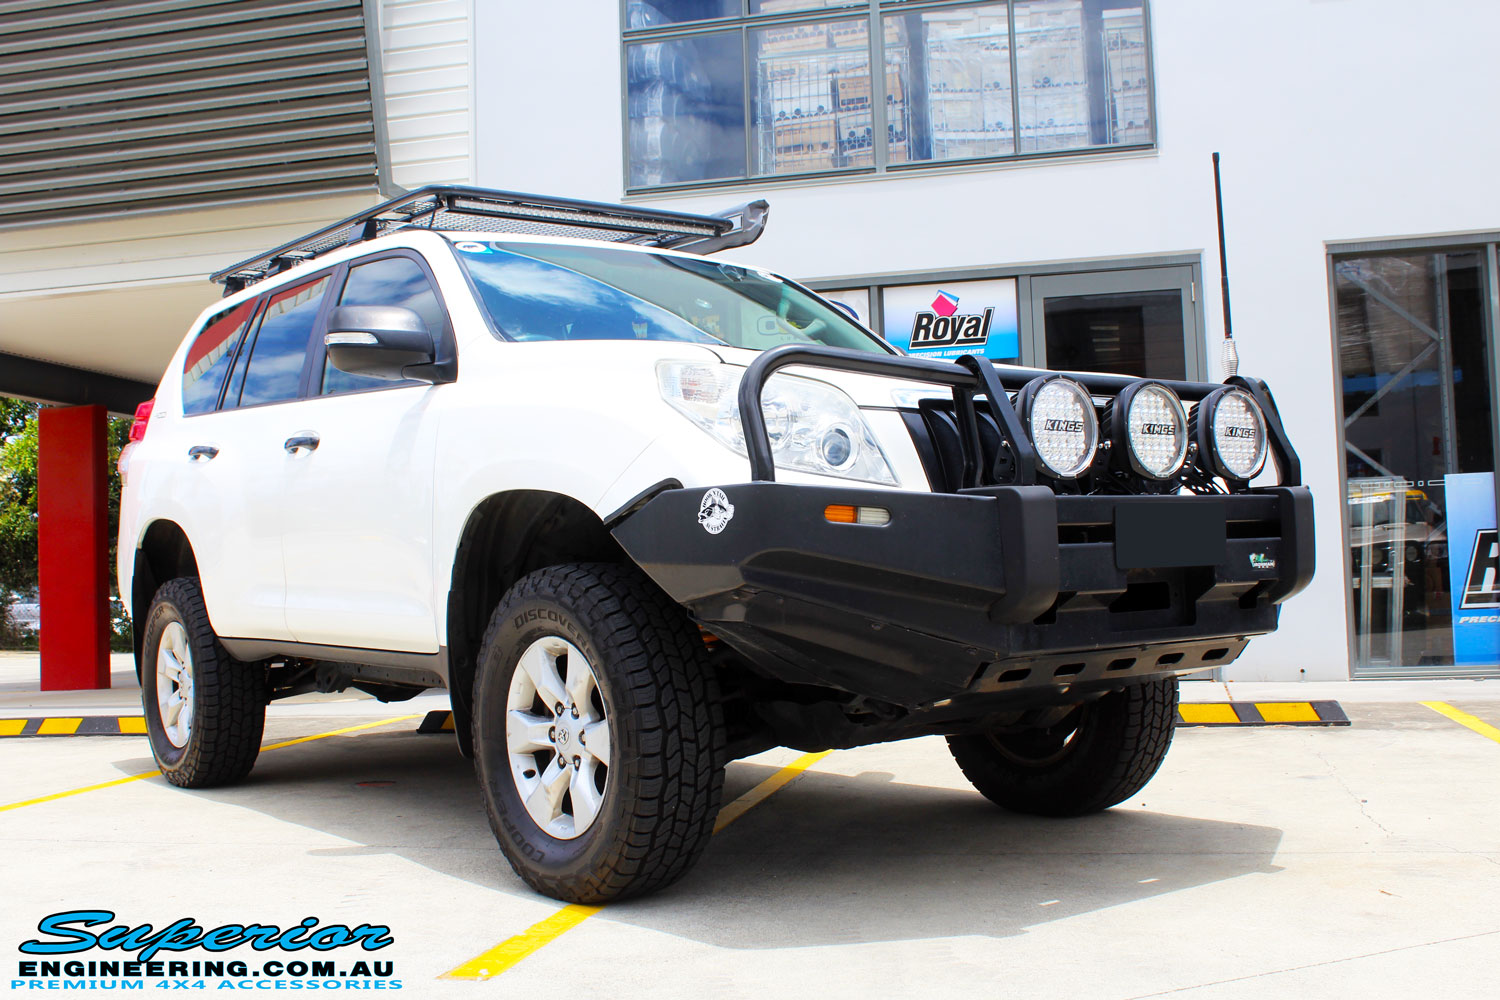 Right front side view of a Toyota 150 Series Prado Wagon after fitment of a Ironman 4x4 45mm Suspension Lift